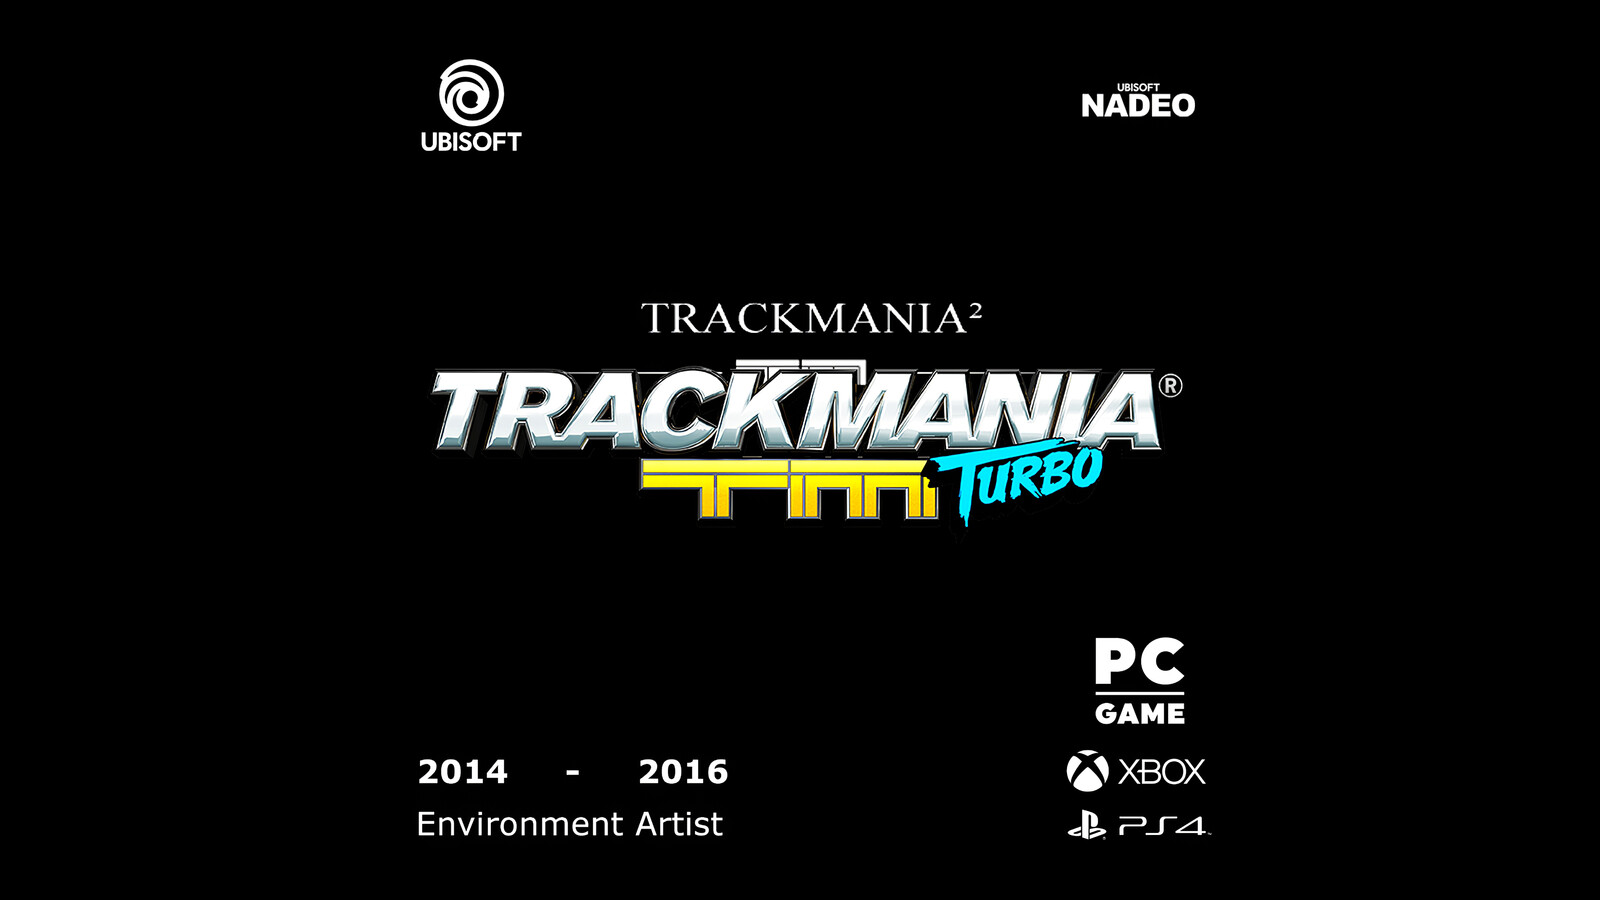 TrackmaniaTurbo